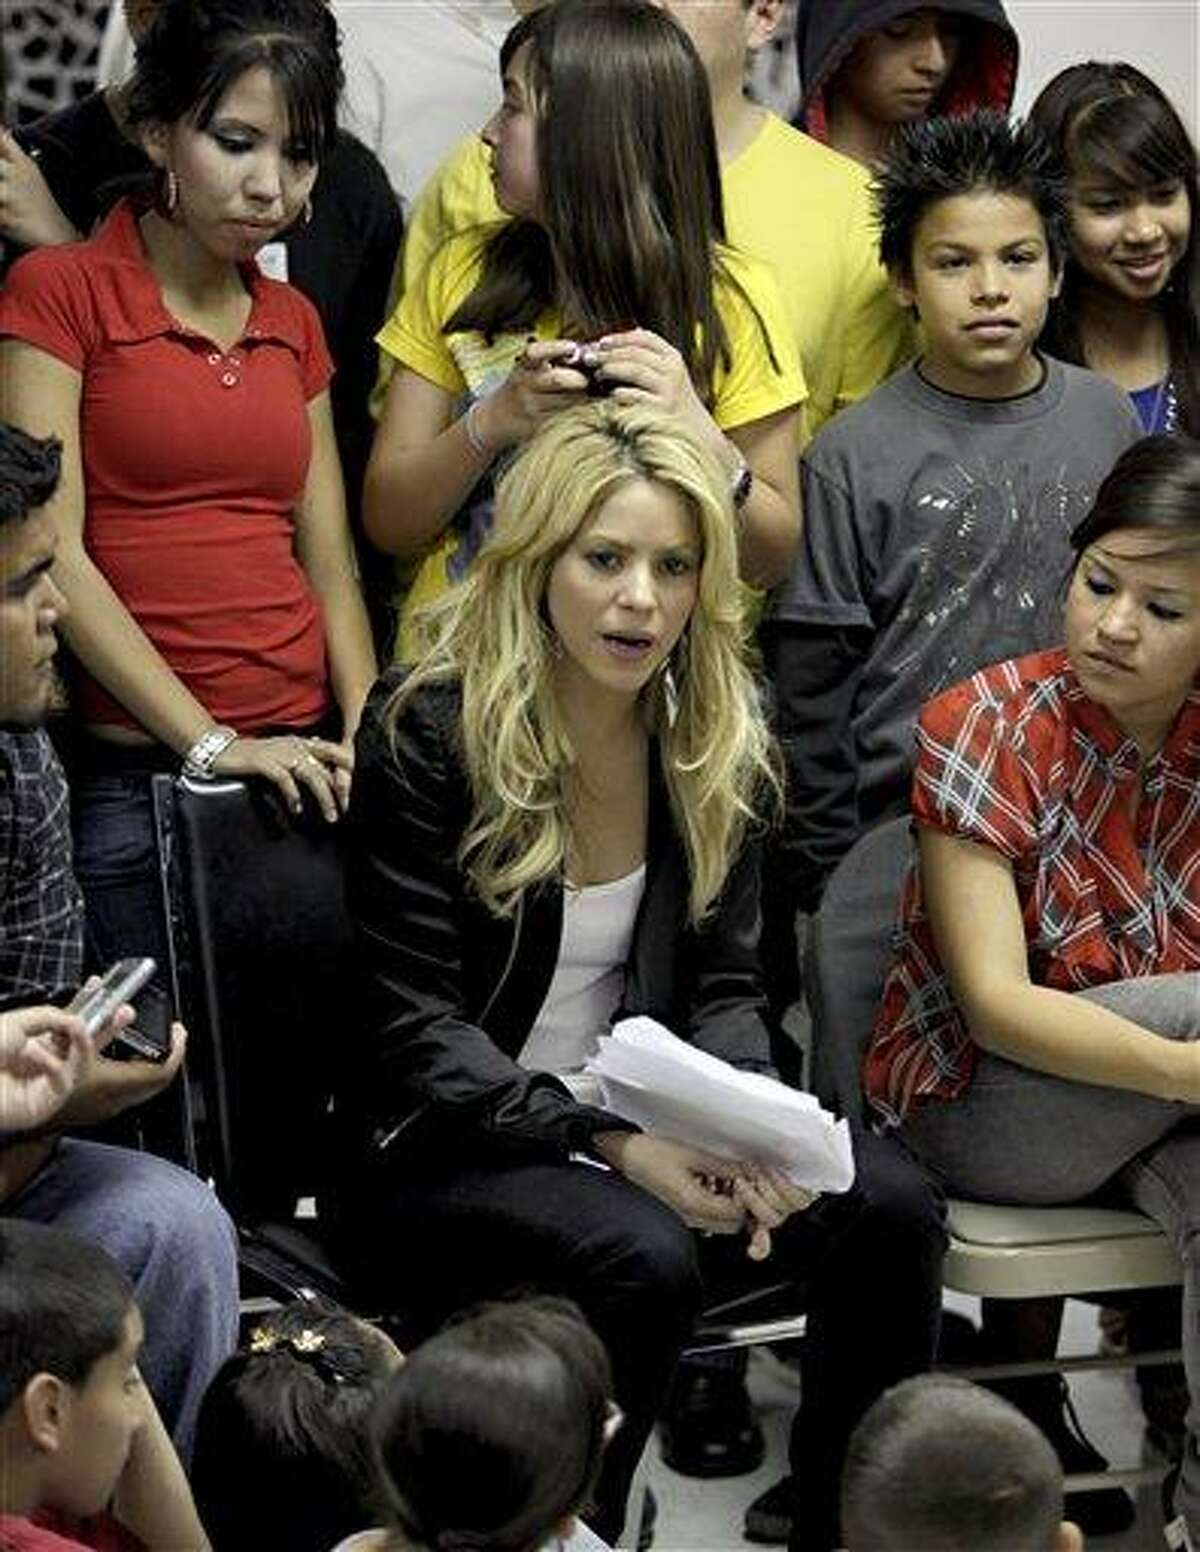 Columbian singer Shakira speaks to guests at the Carl Hayden Youth Center Thursday, April 29, 2010 in Phoenix. The pop star was visiting Phoenix to voice her opposition to the new Arizona immigration law.